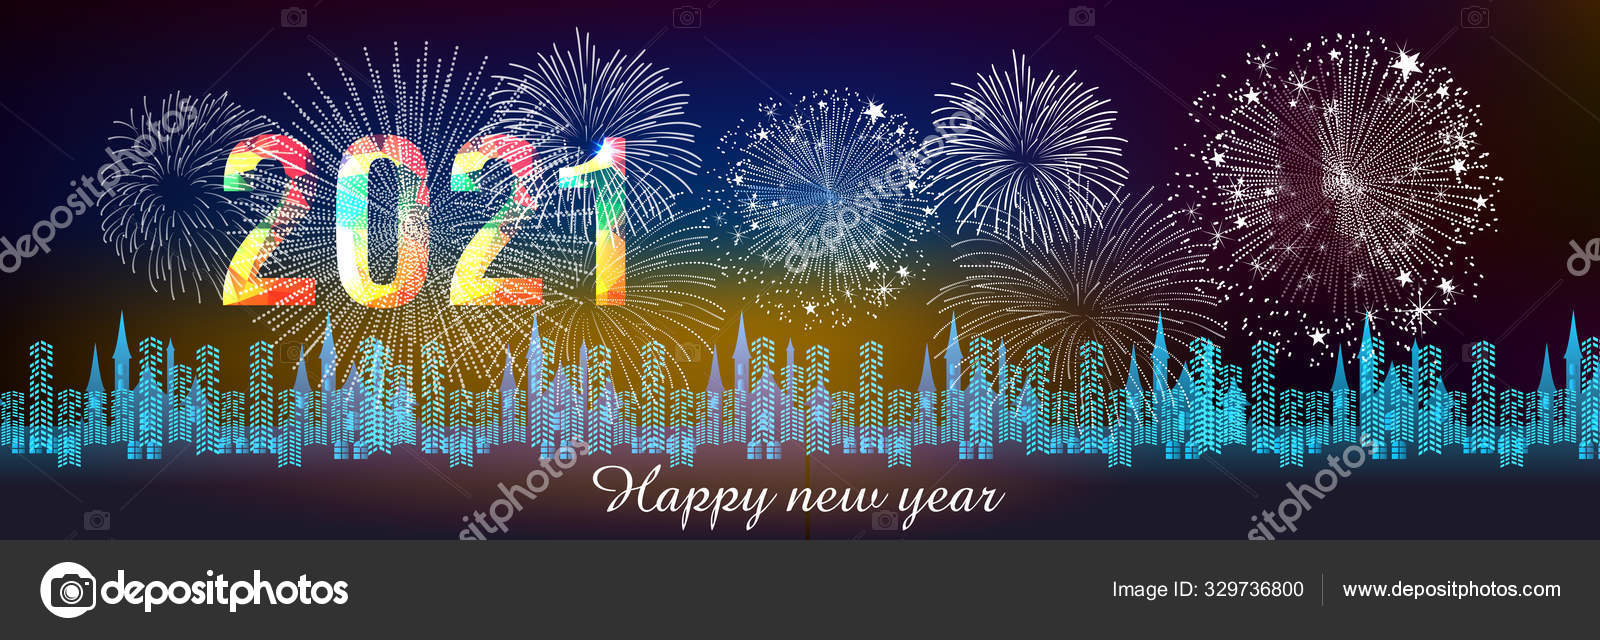 Happy new year 11 with firework background. Firework display colorful for  holidays. 11